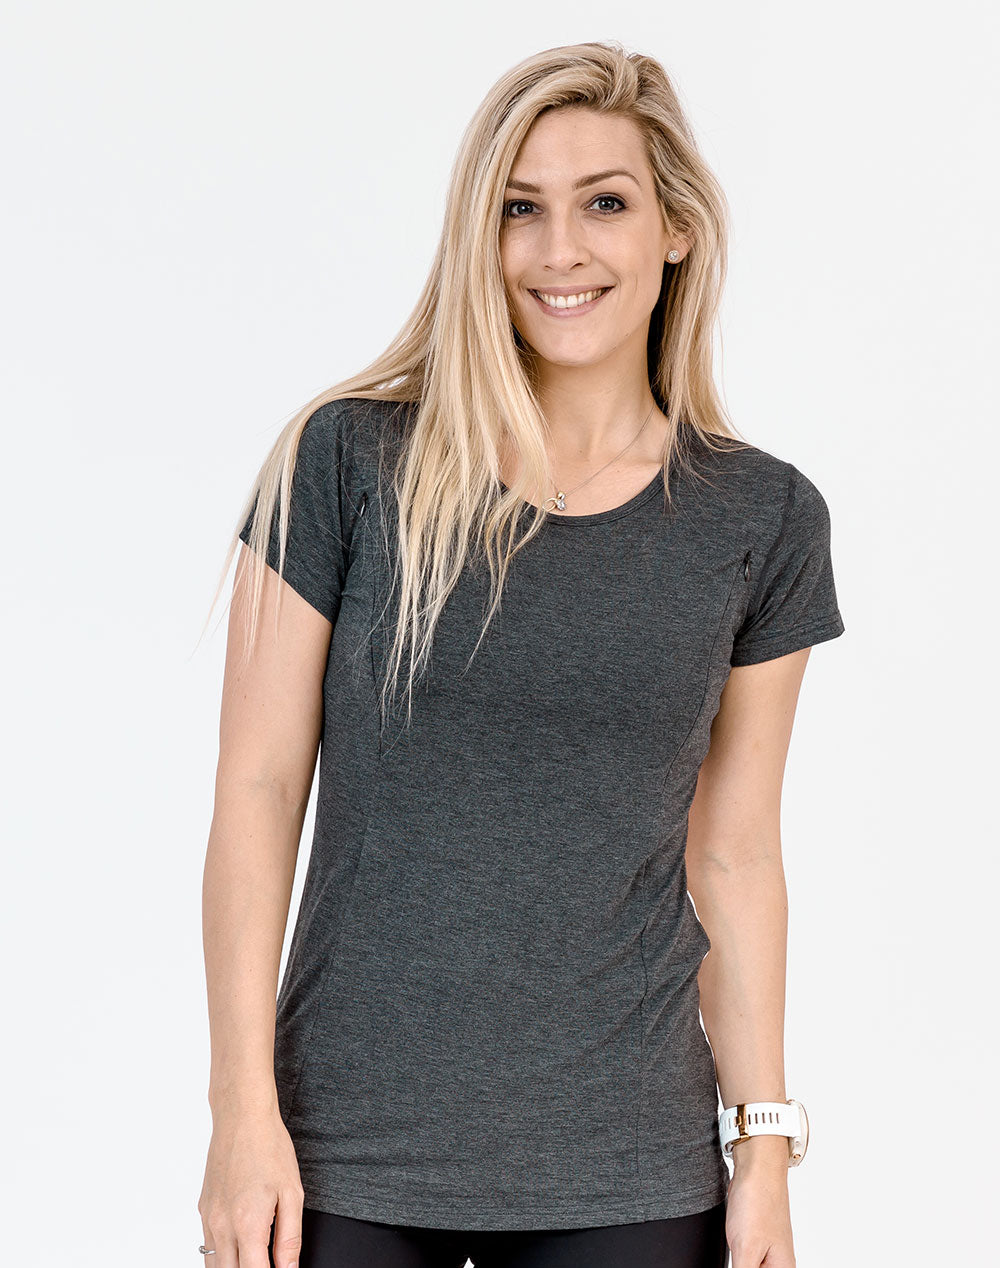 active mum wearing a grey breastfeeding t-shirt